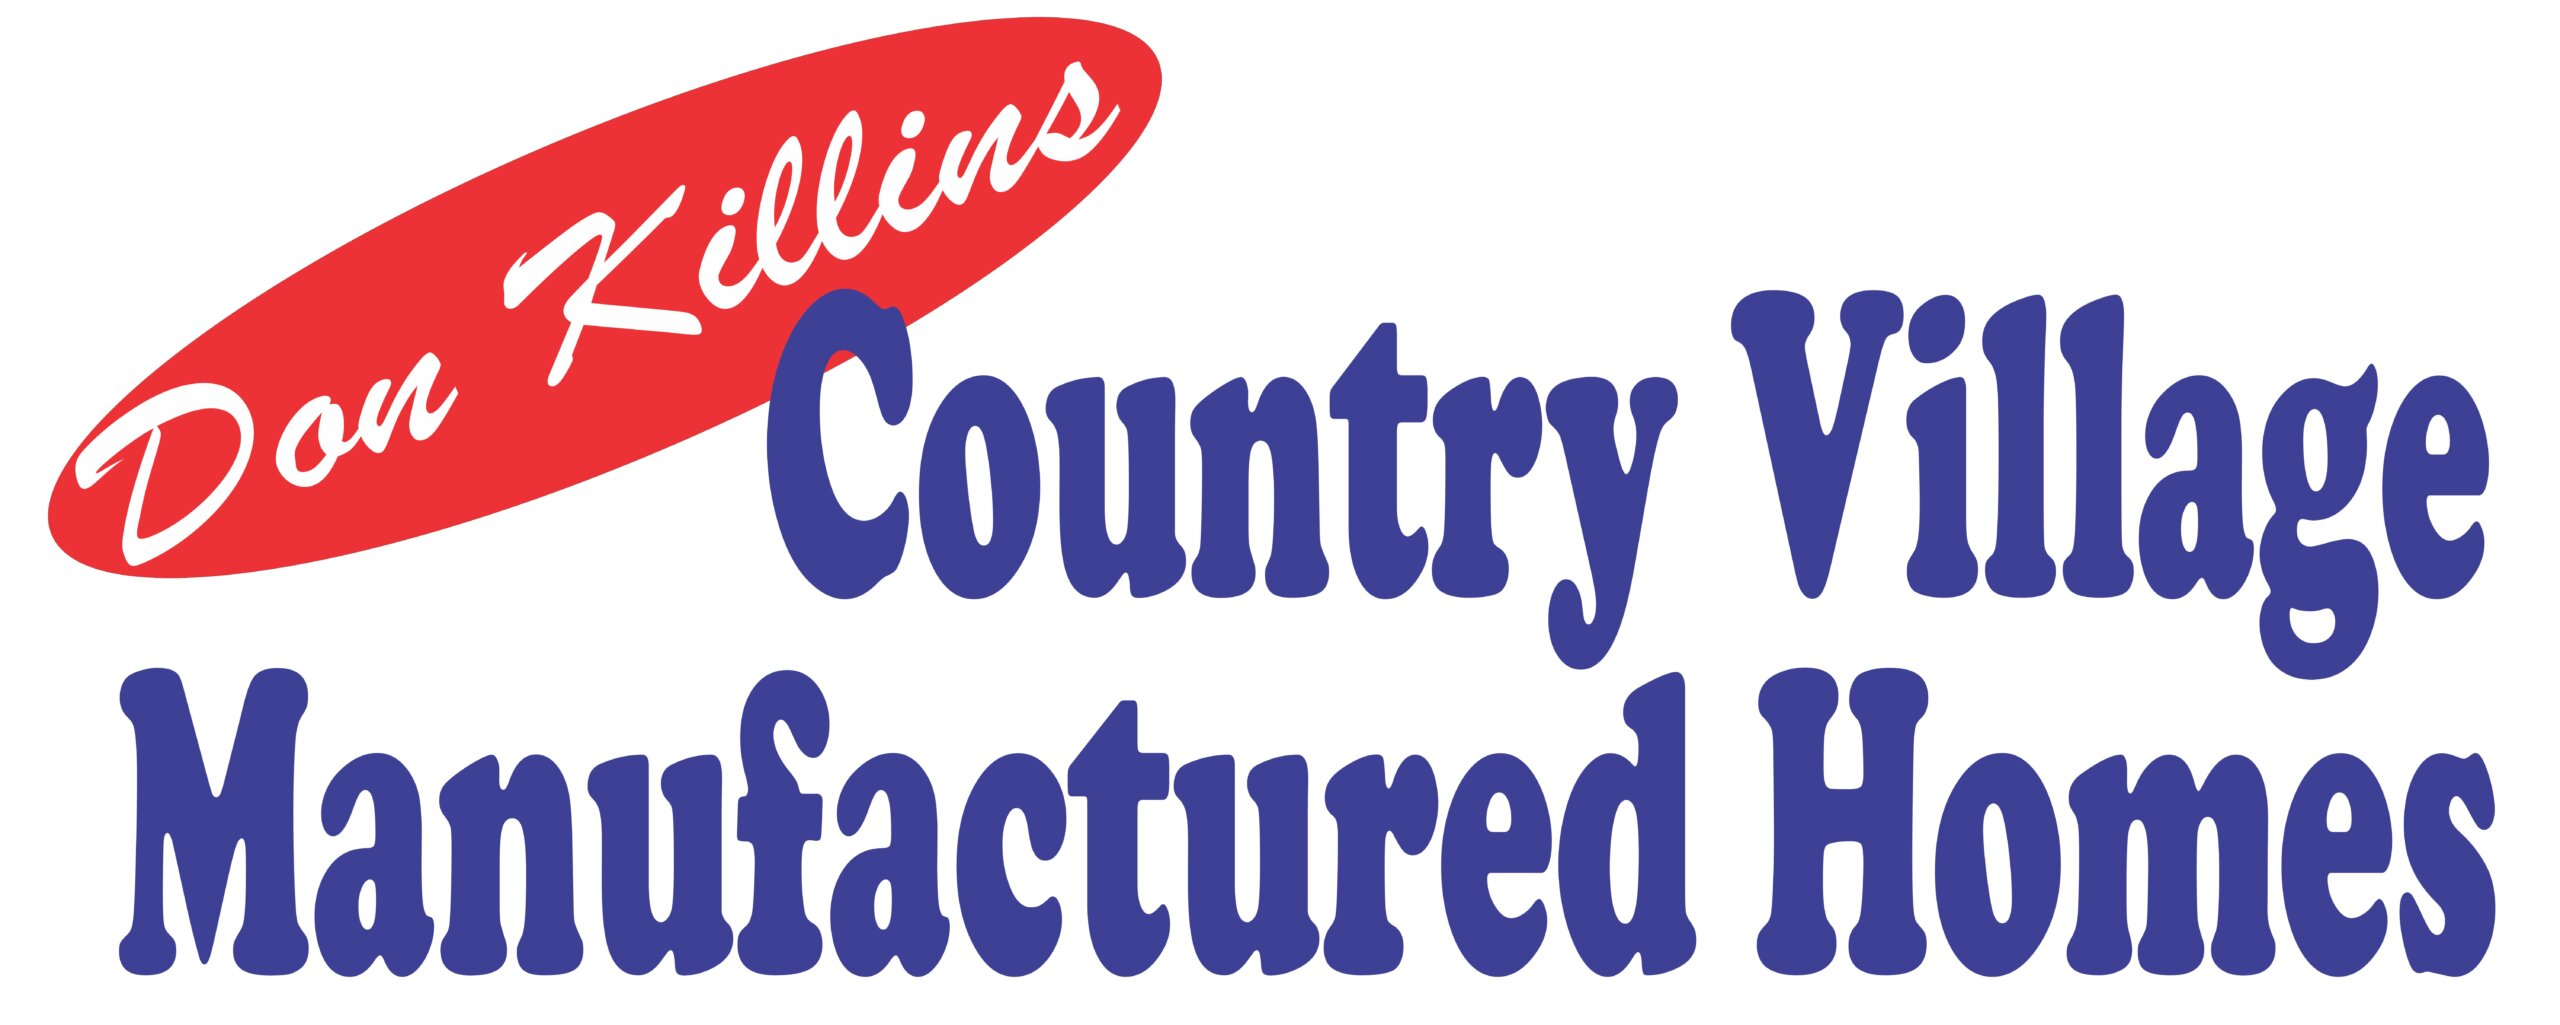 Don Killins Country Village Manufactured Homes, Inc.